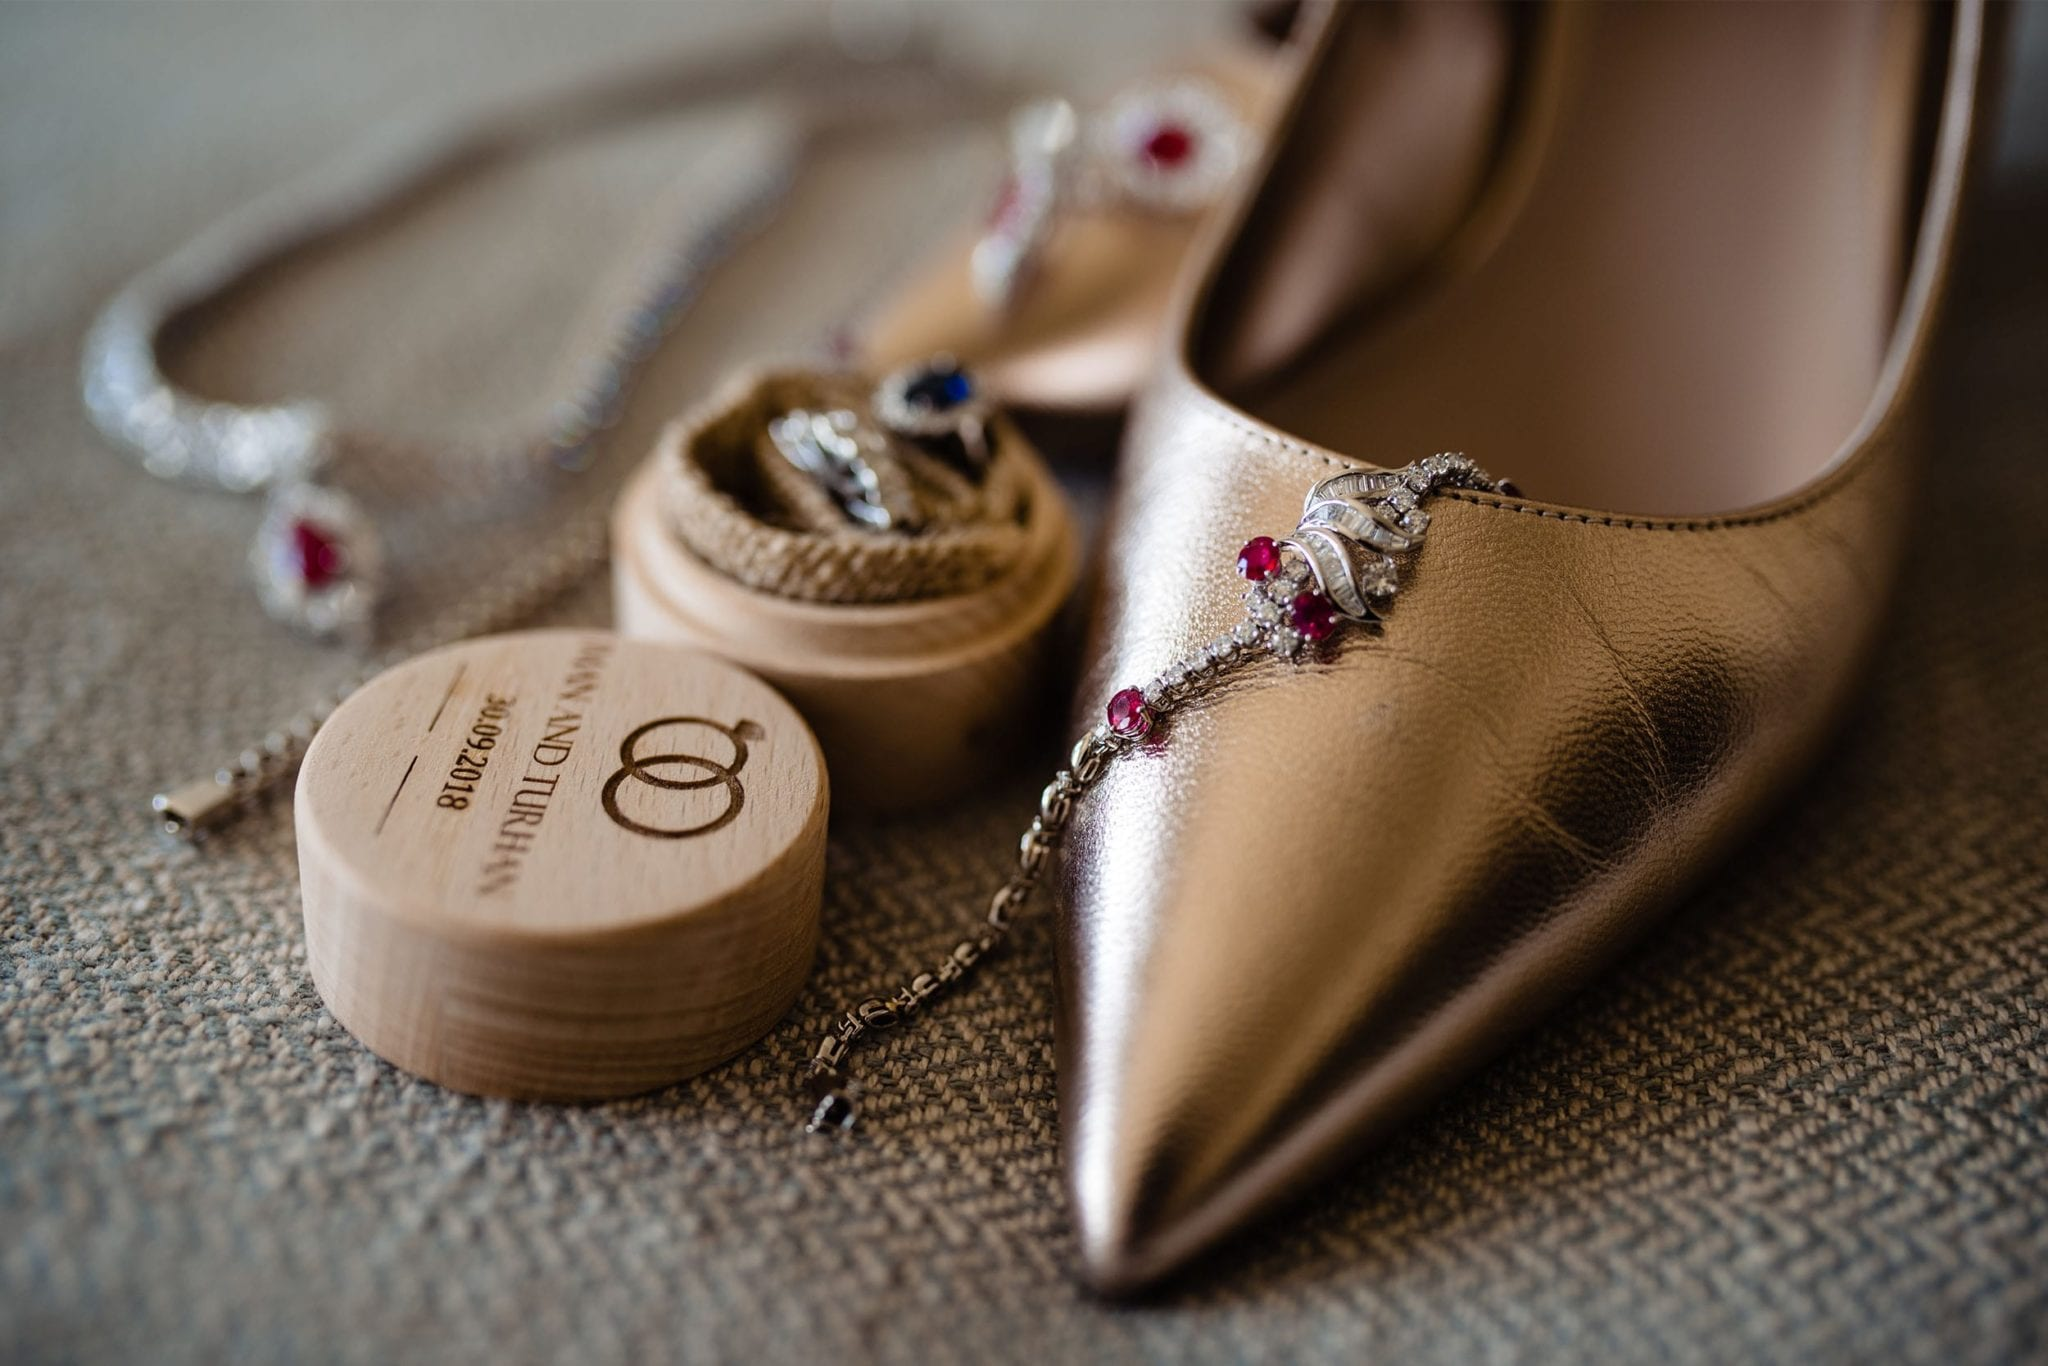 Female Wedding Photographer Essex - Shoes and Wedding Ring